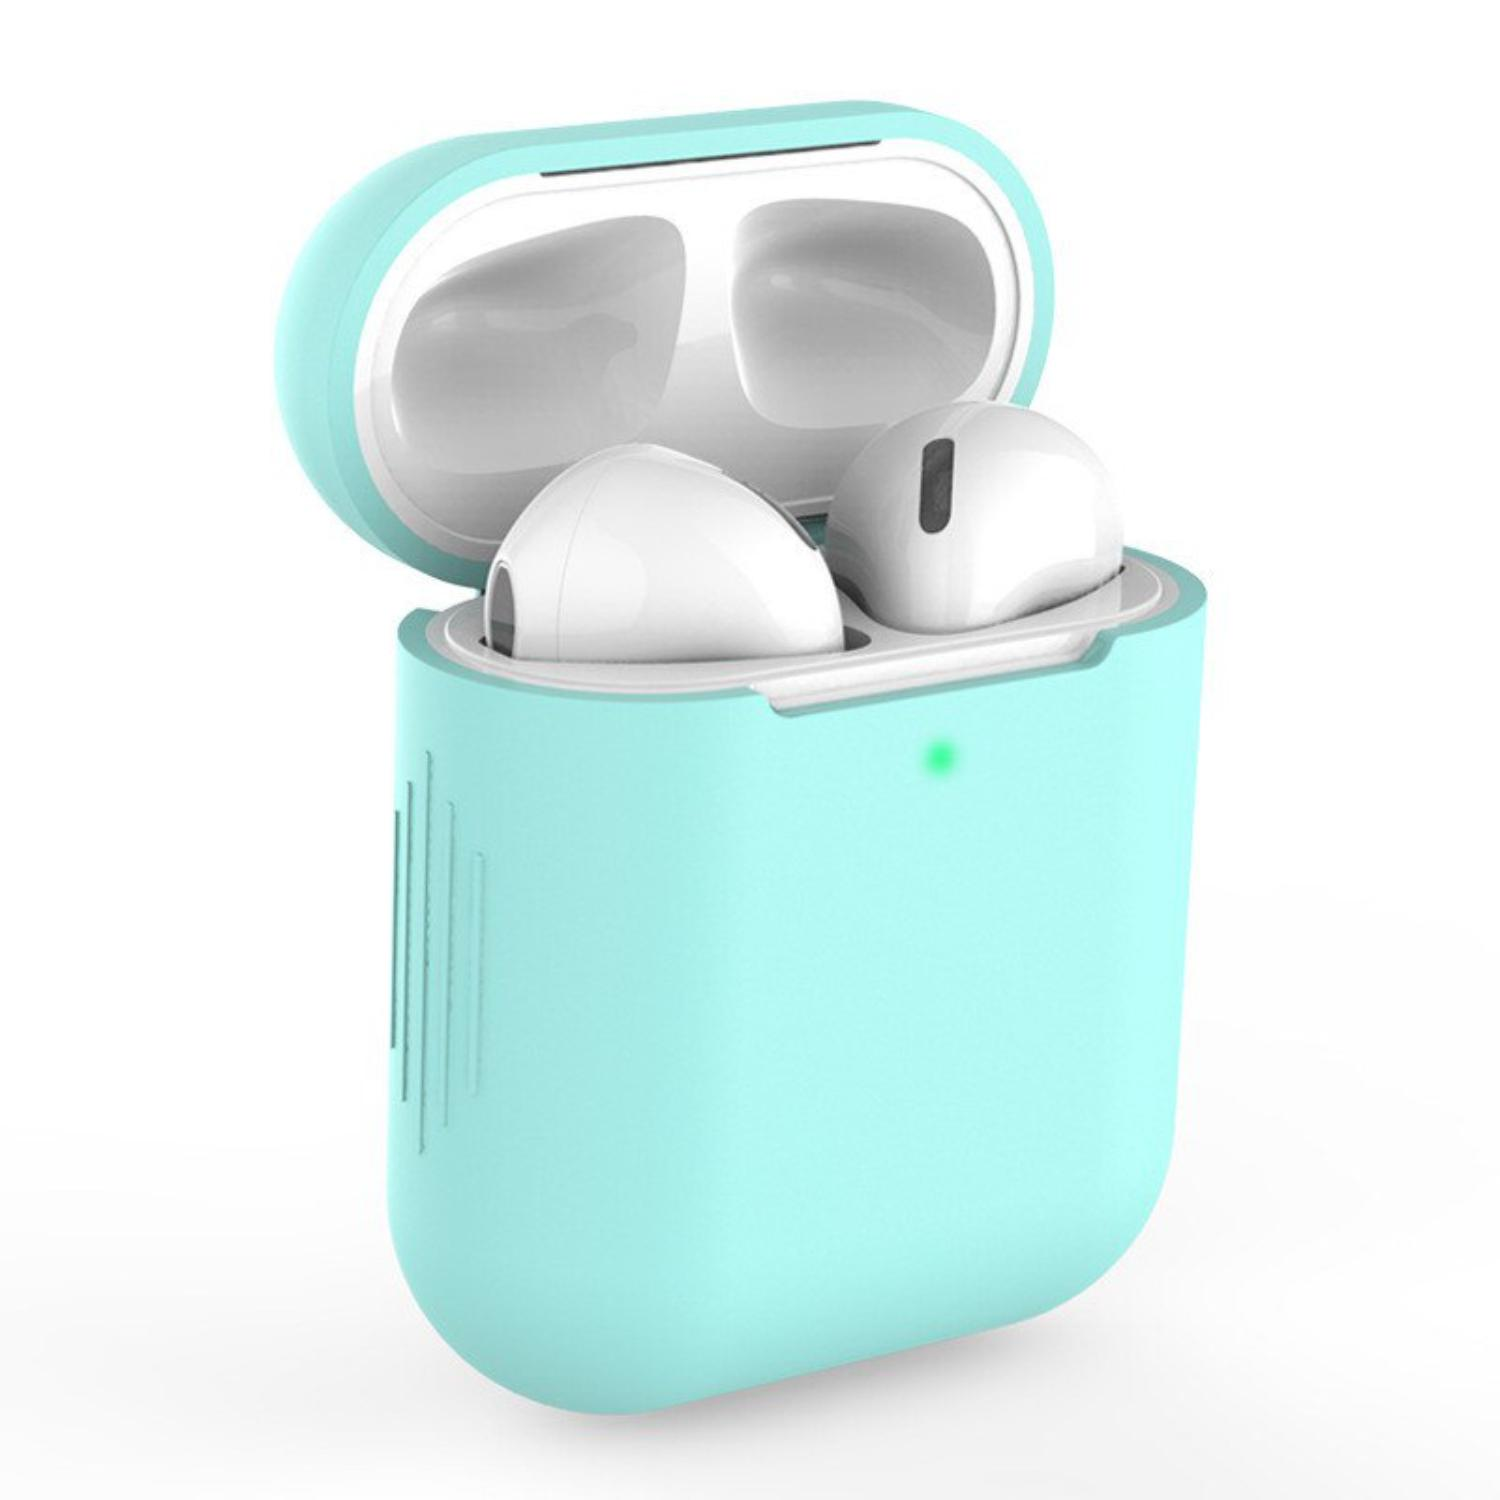 iPhone 11 - Airpod case hoesje